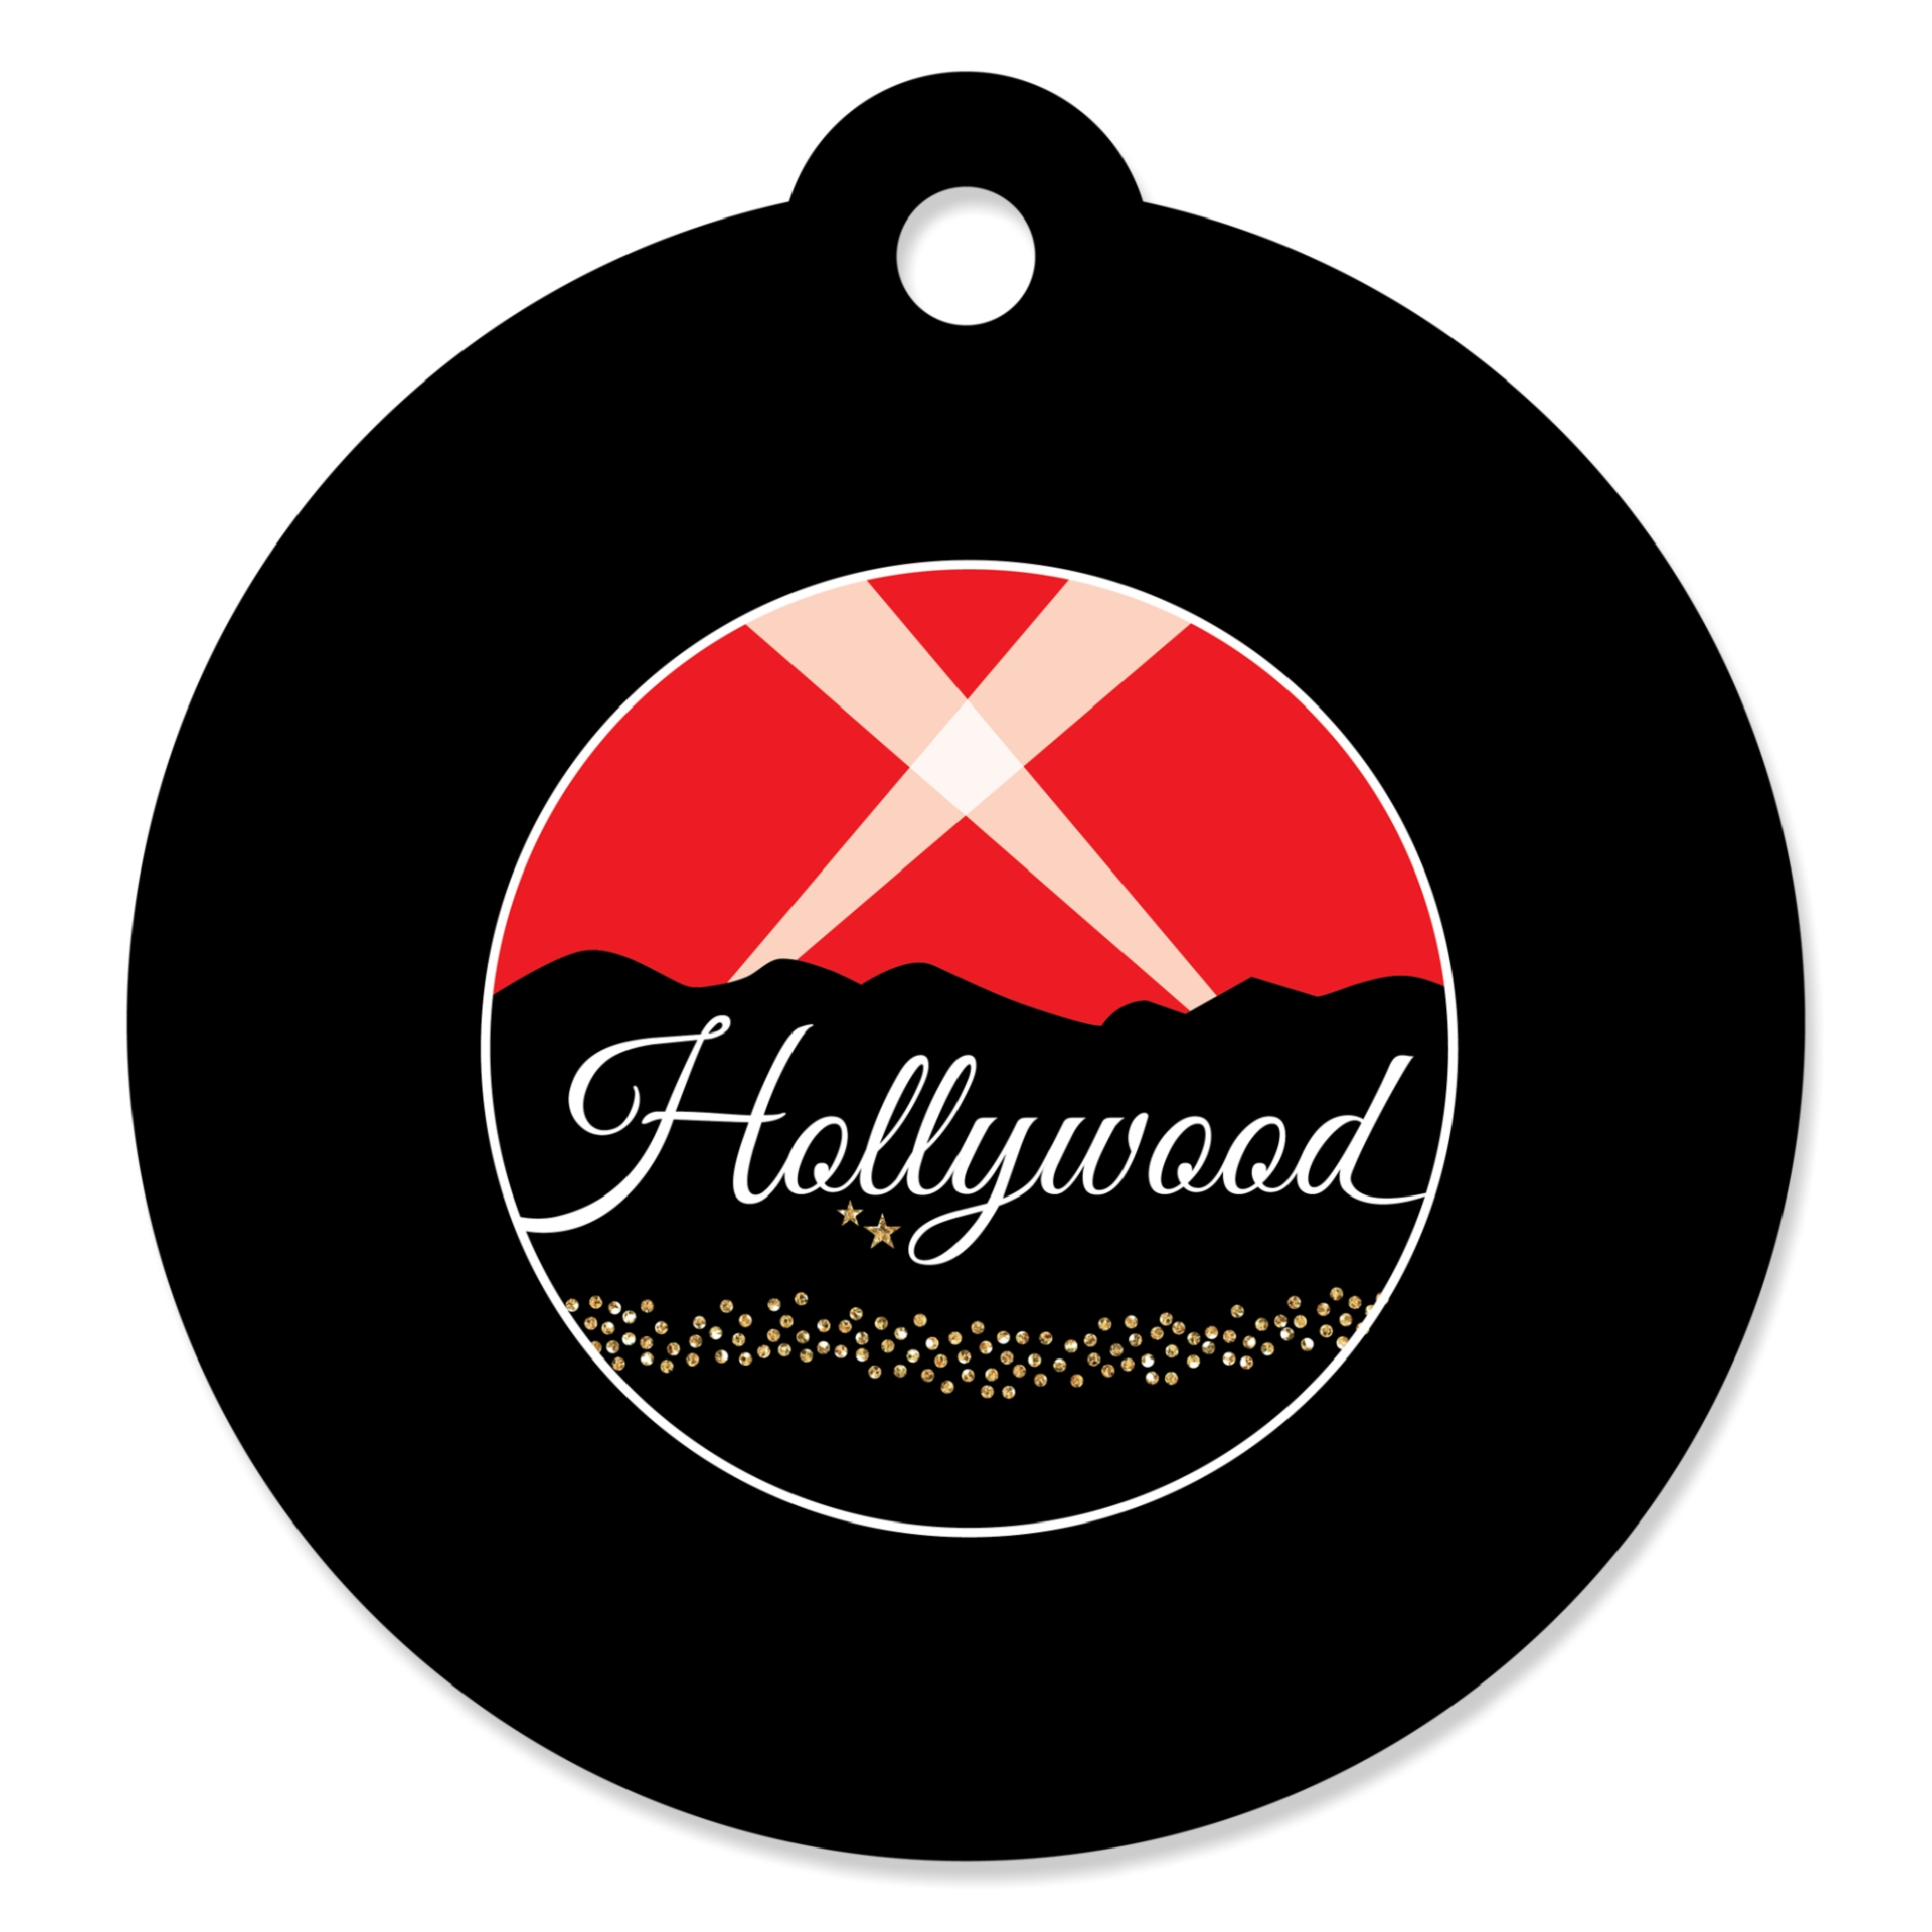 Red Carpet Hollywood - Movie Night Party Favor Gift Tags (Set of 20)